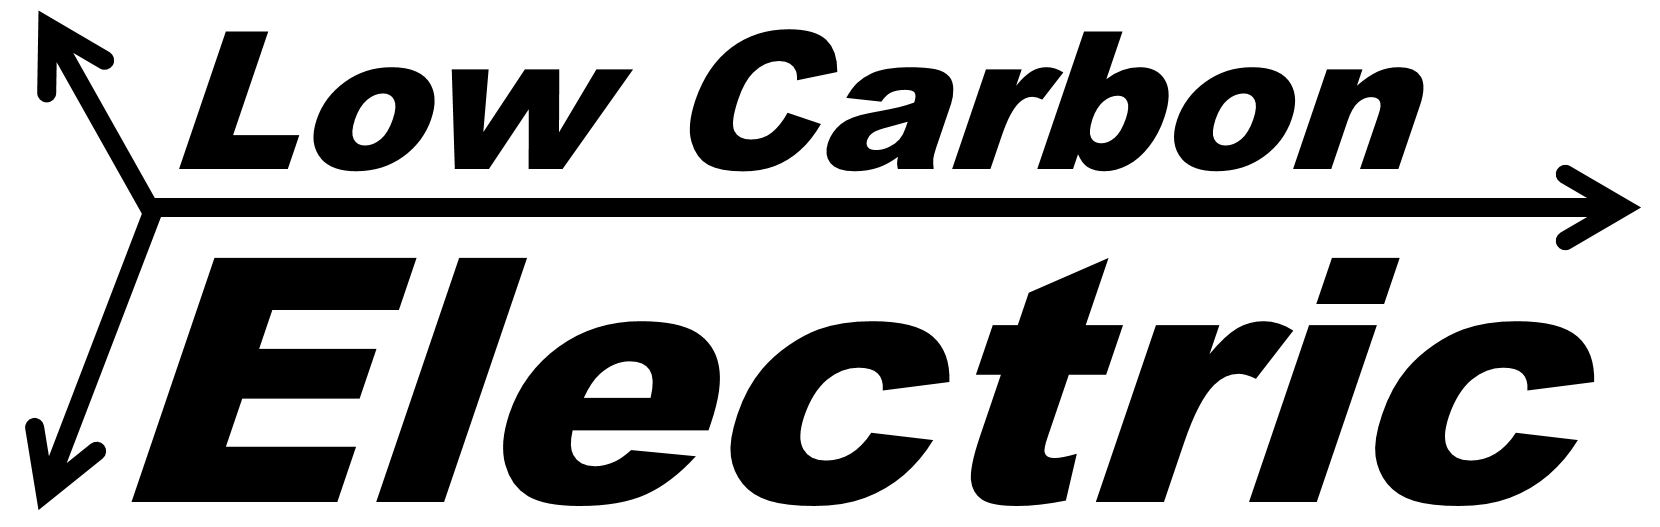 Low Carbon Electric Logo